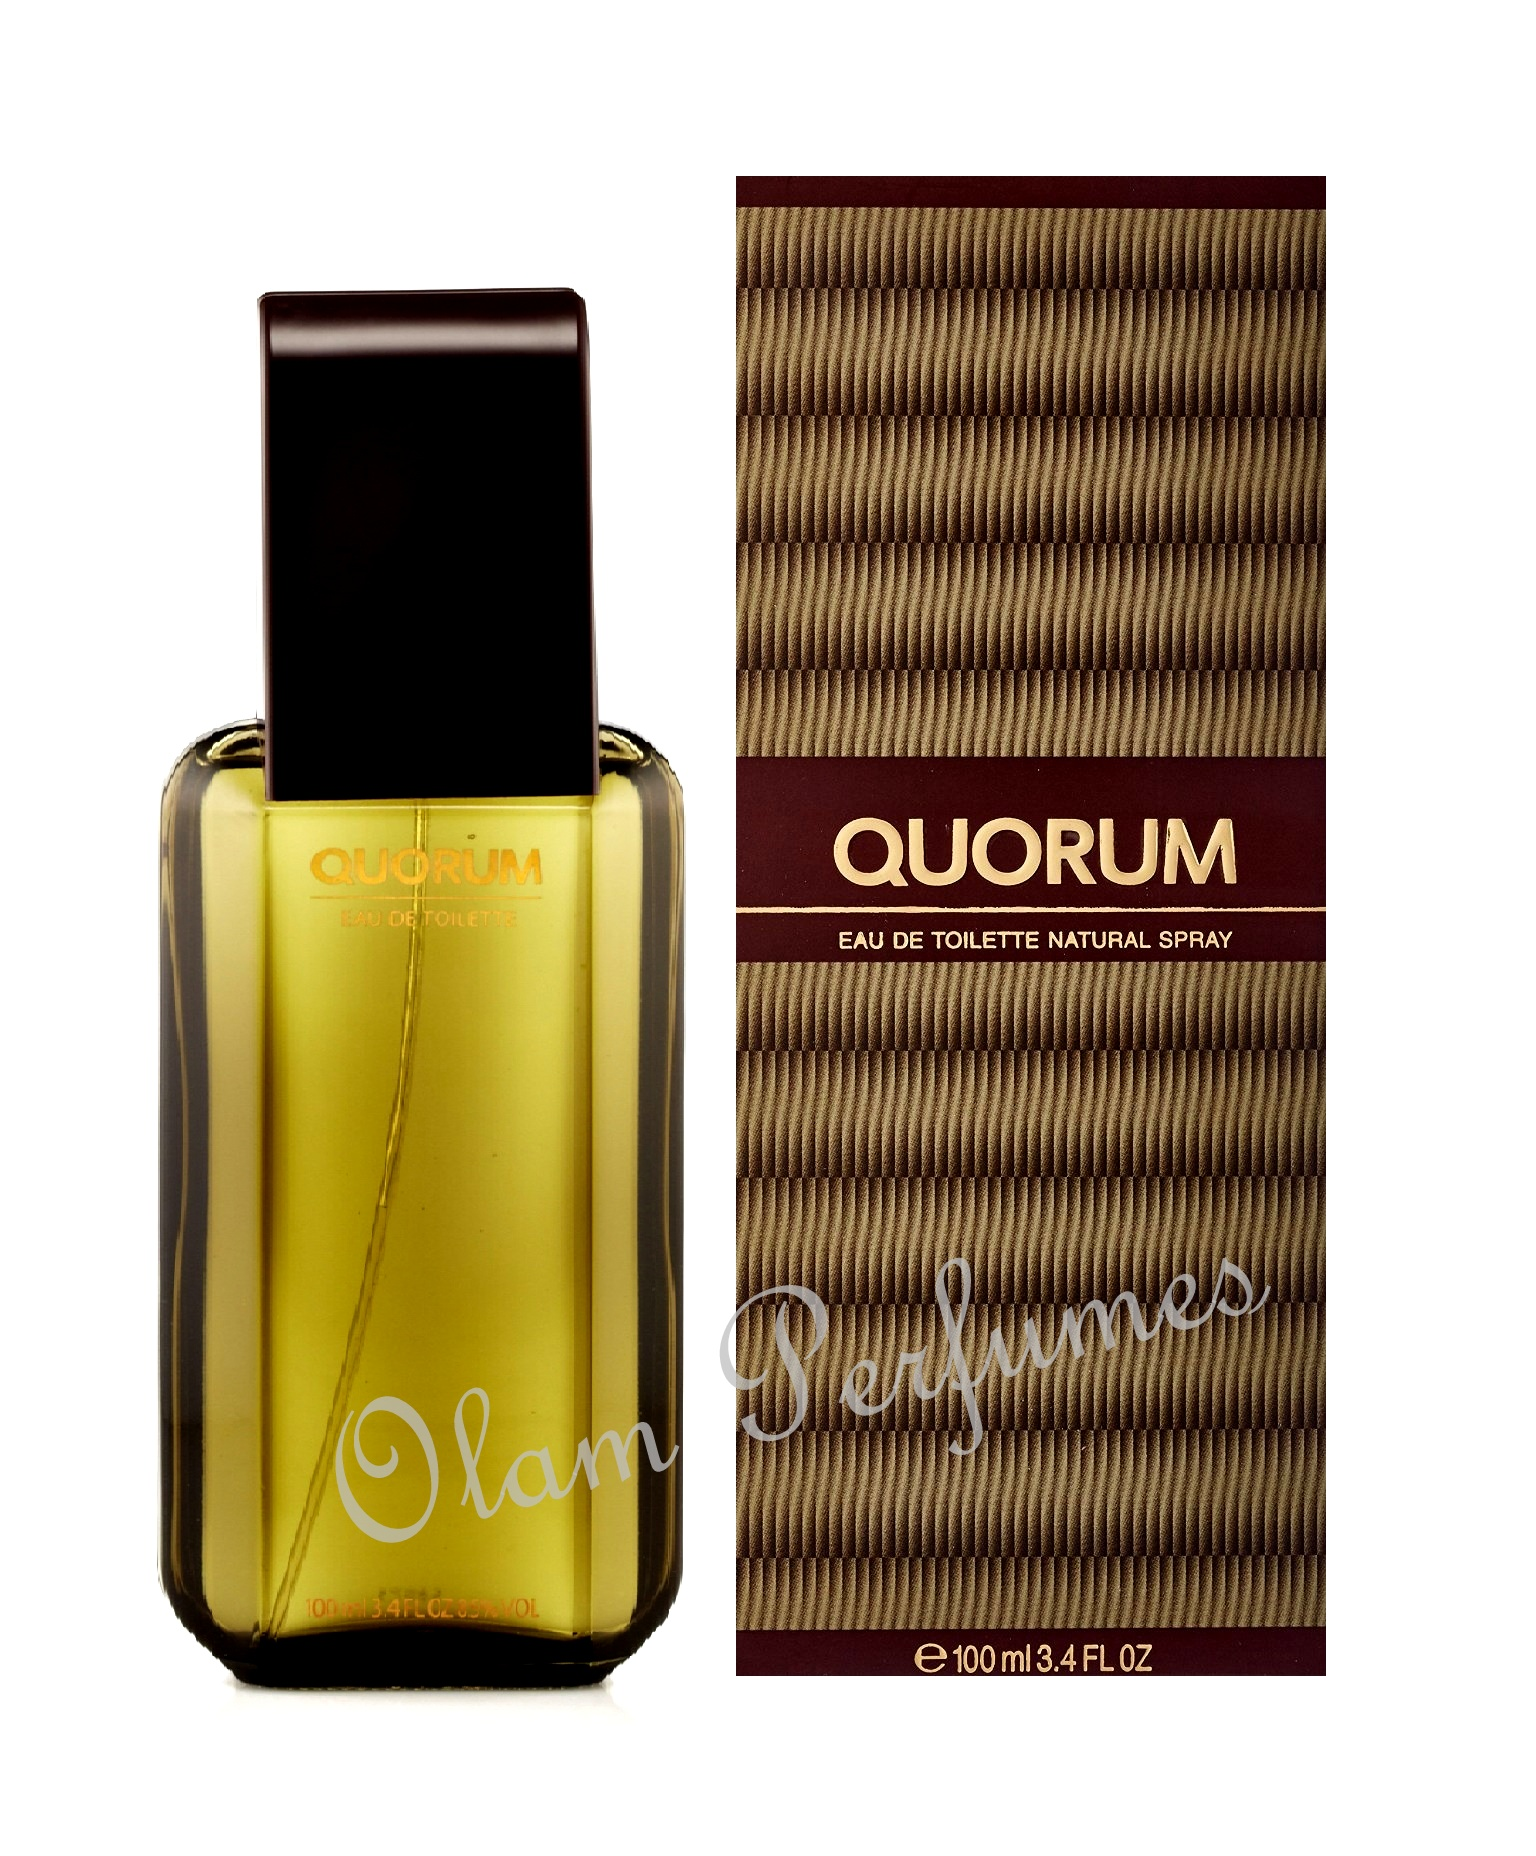 QUORUM EAU DE TOILETTE SPRAY 3.4oz